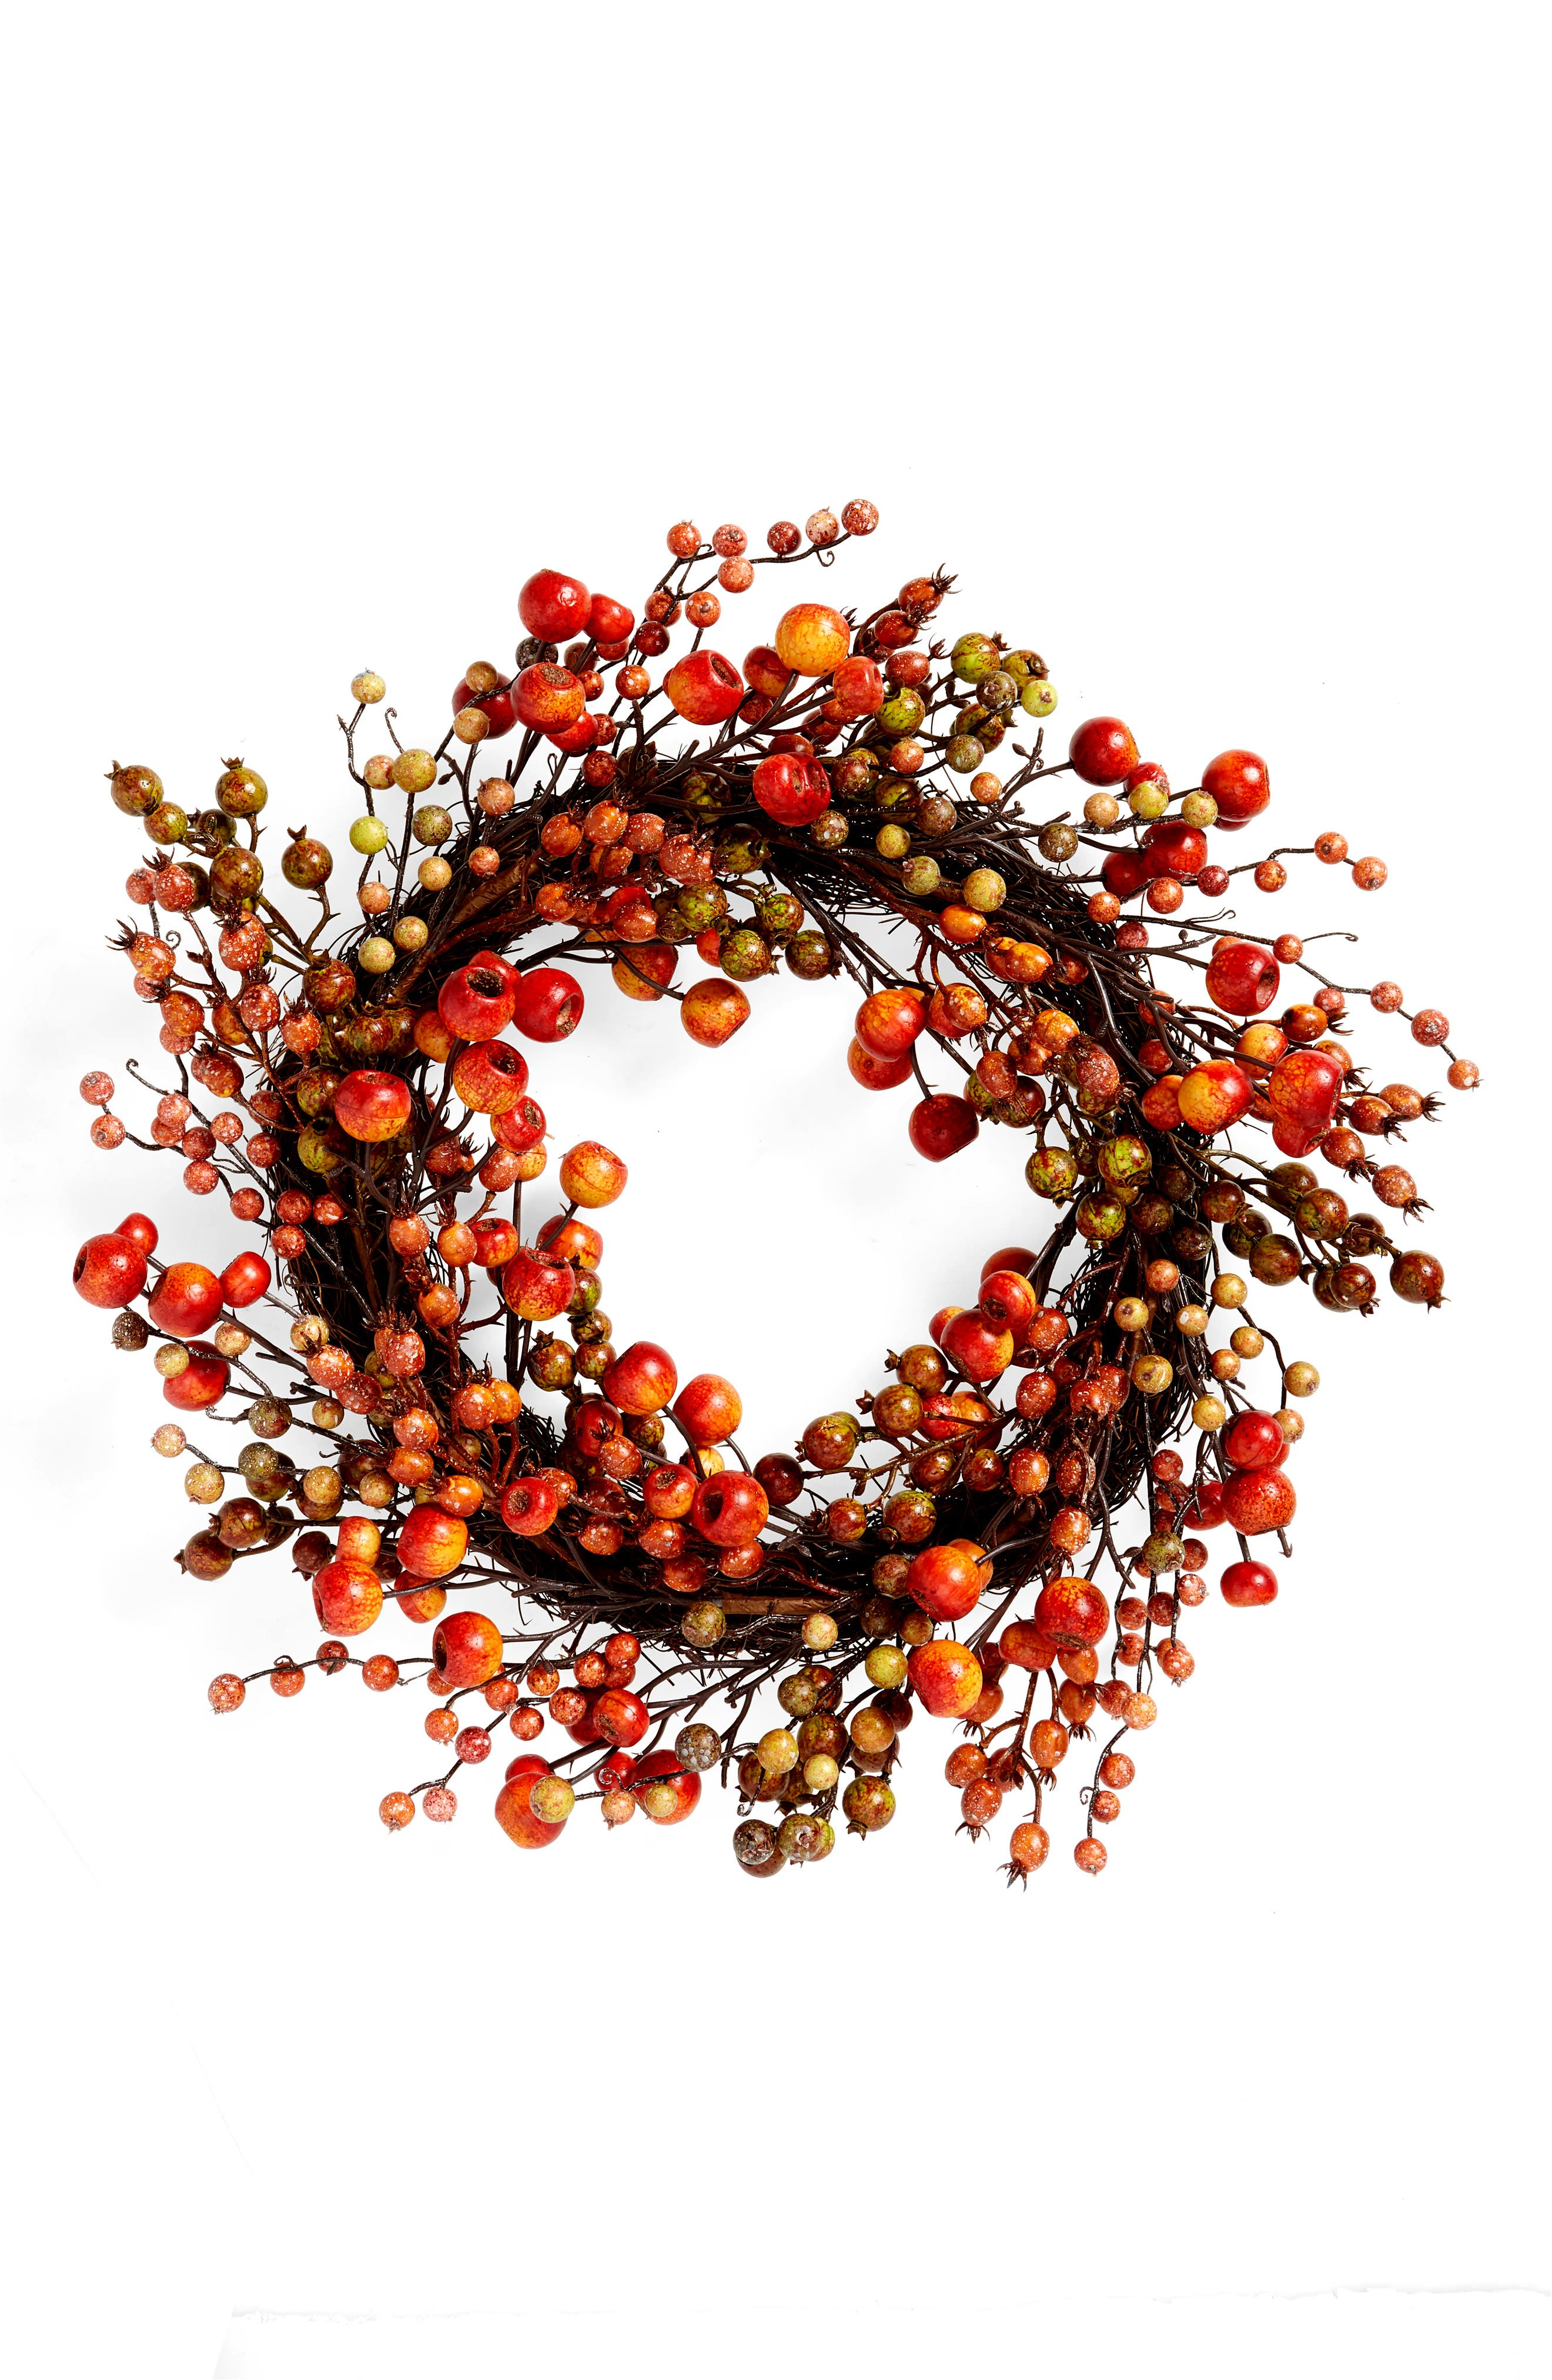 Harvest-time coloring means this wreath adds rich, inviting color to any space. Style Name: Allstate Berry Wreath. Style Number: 6082312. Available in stores.